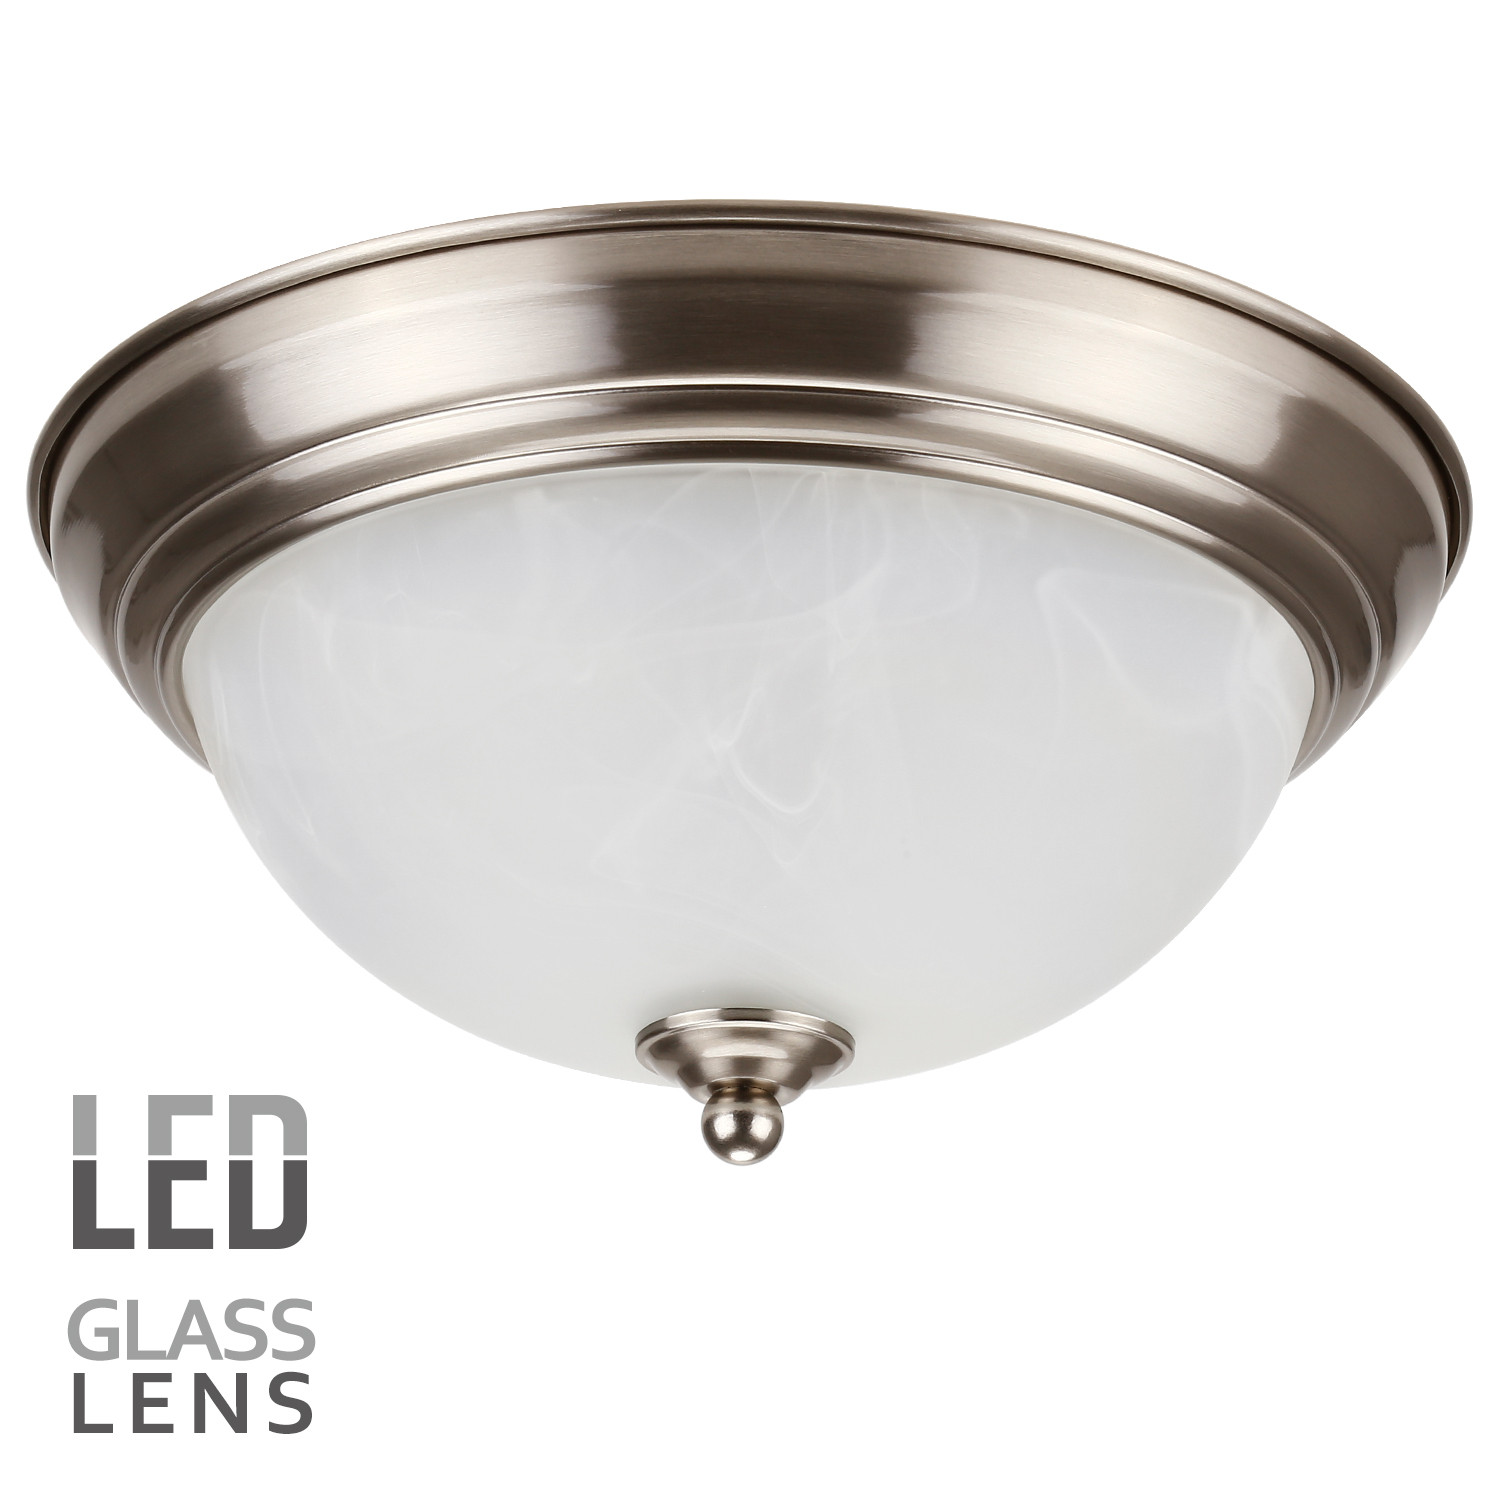 LEONLITE Dimmable 11-Inch LED Flush Mount Ceiling Light Fixture, Alabaster Glass Shade, 15W (80W Equivalent), 3000K Warm... by